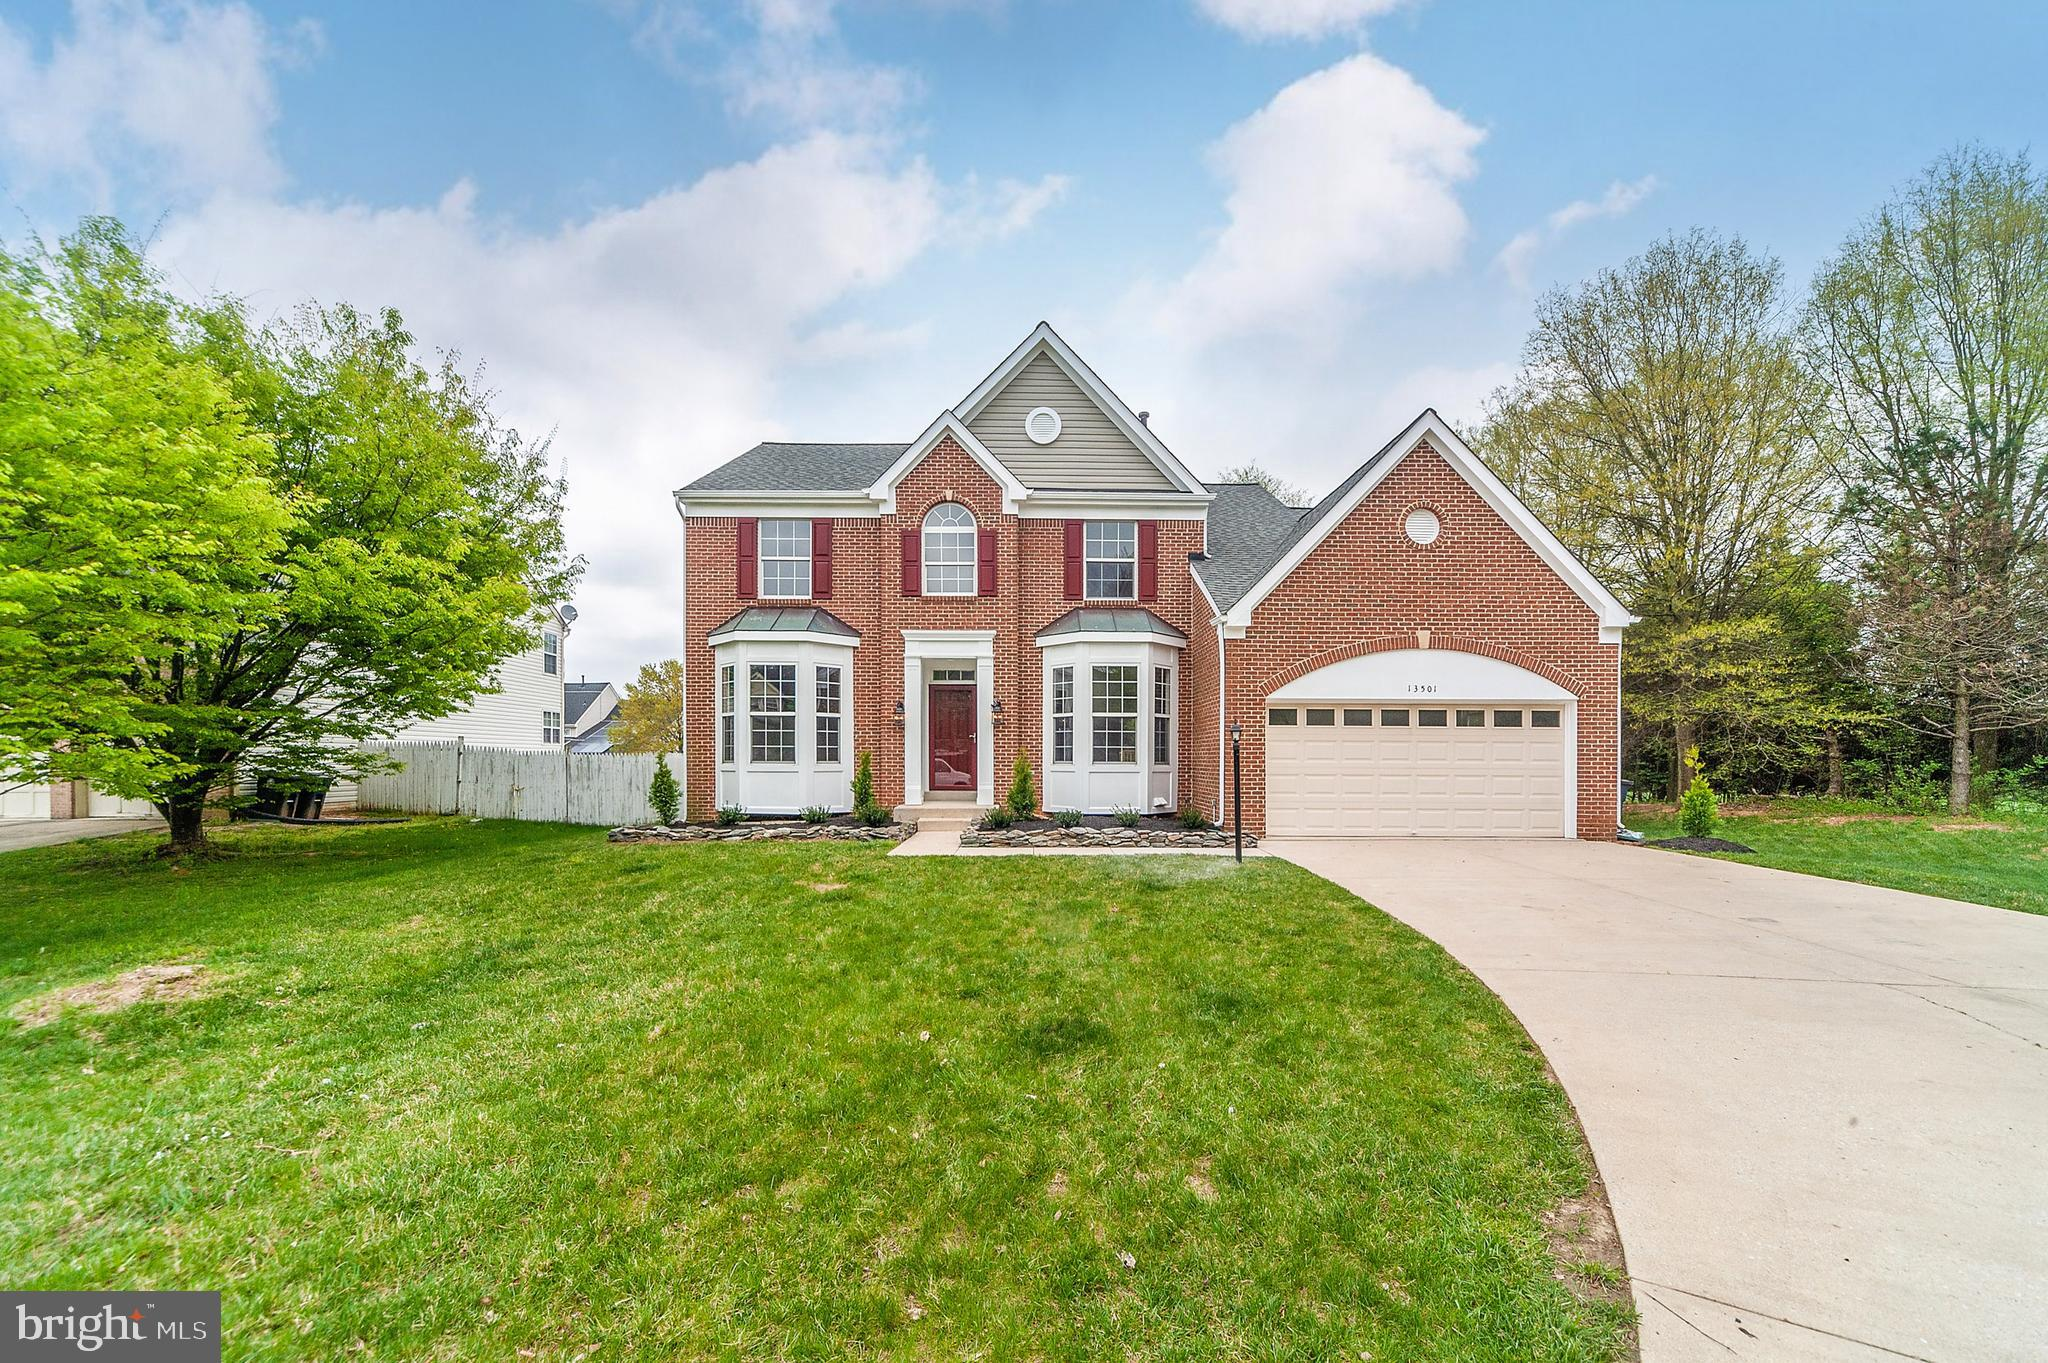 13501 GAMBREL COURT, LAUREL, MD 20708